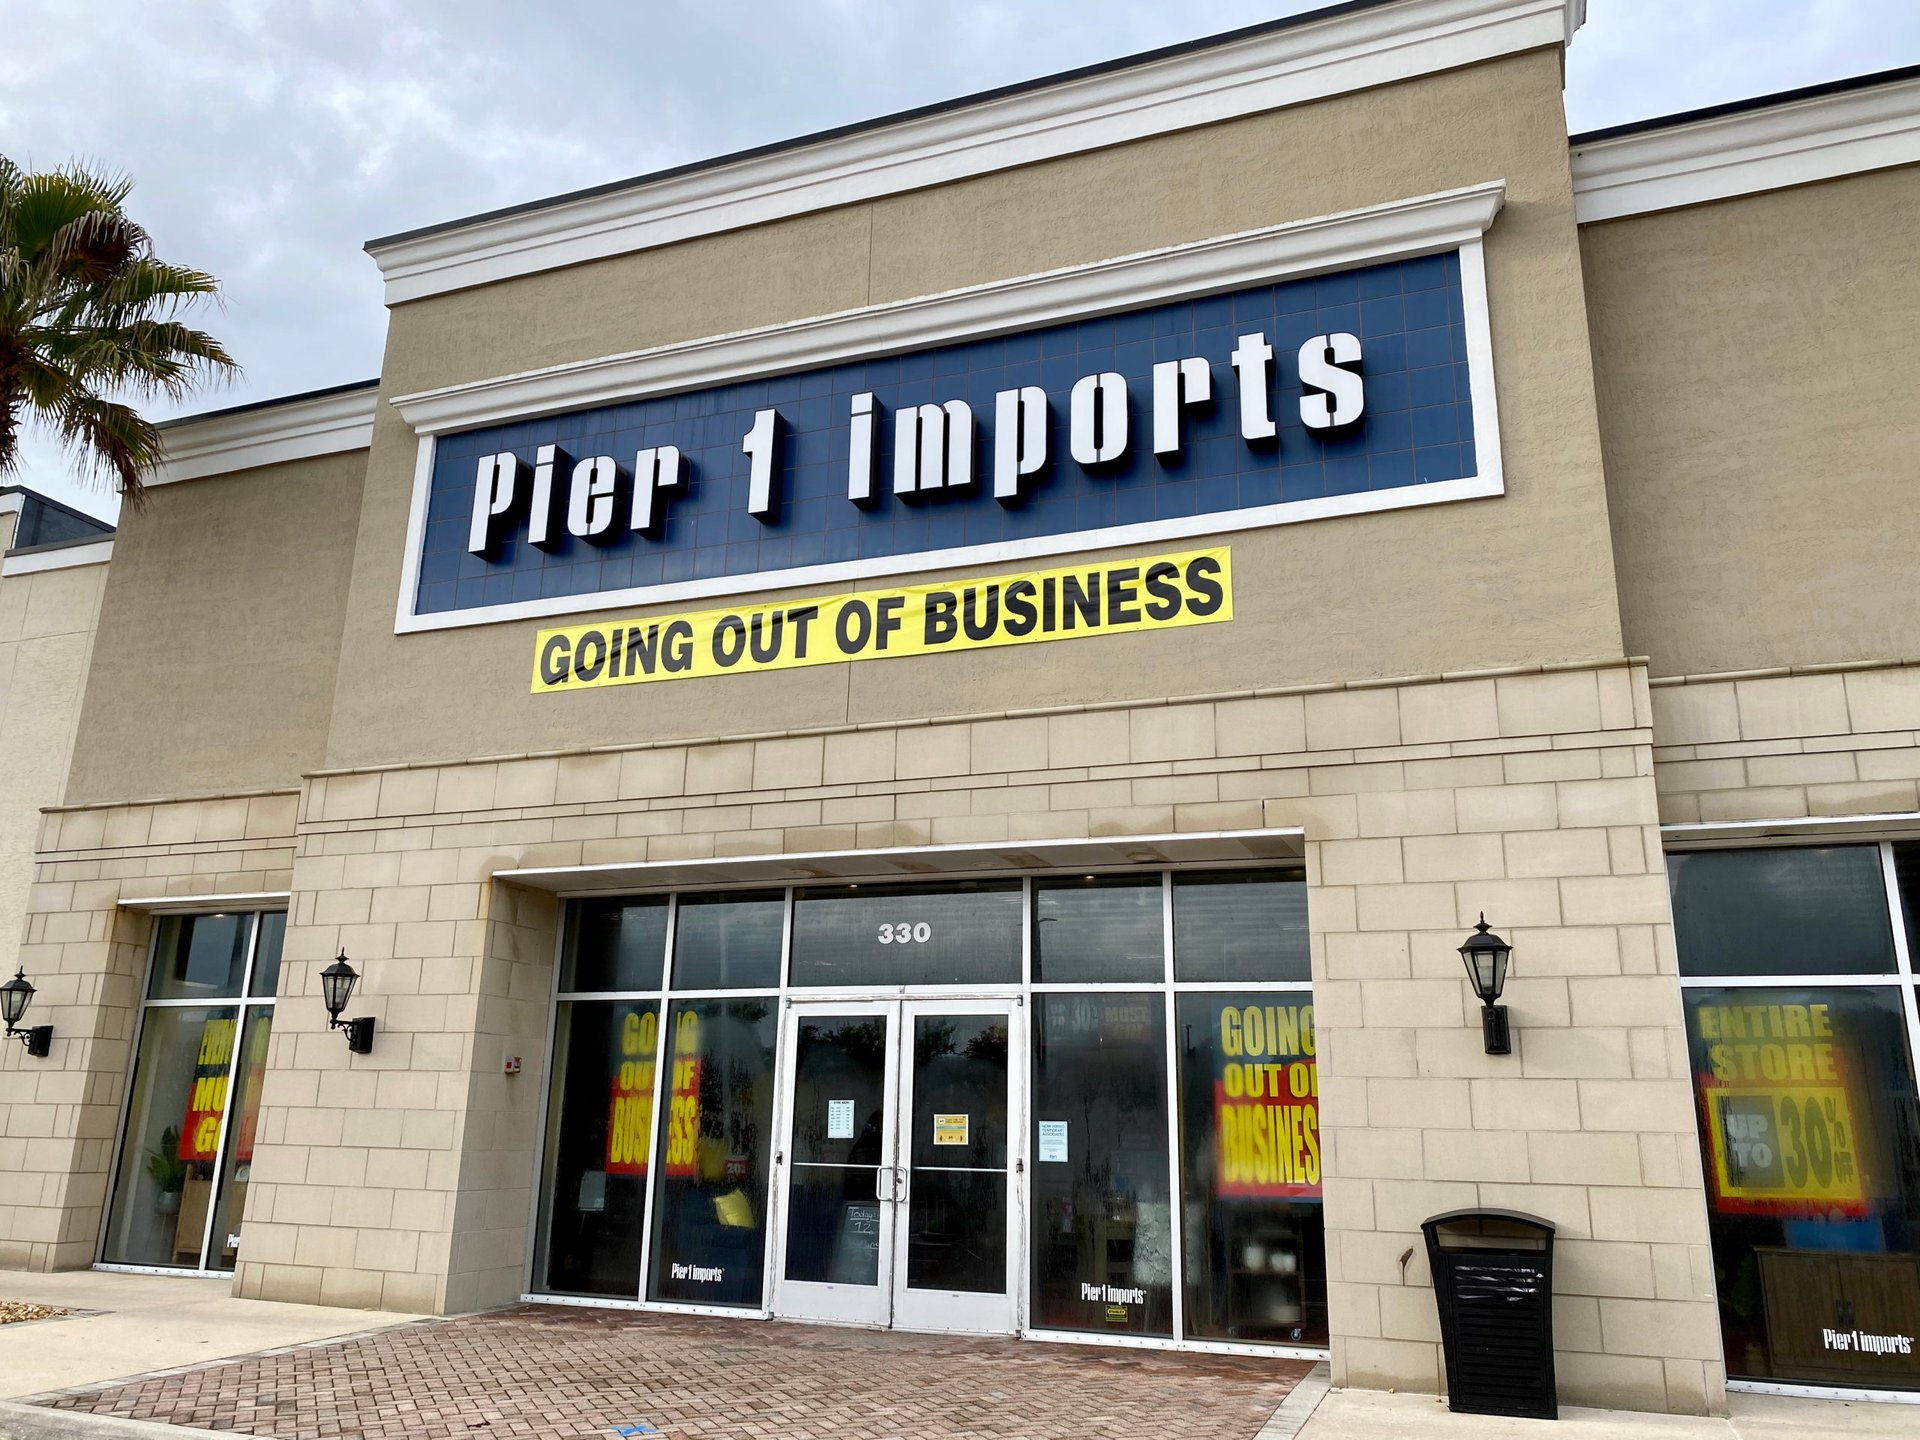 Closing Pier 1 Imports store